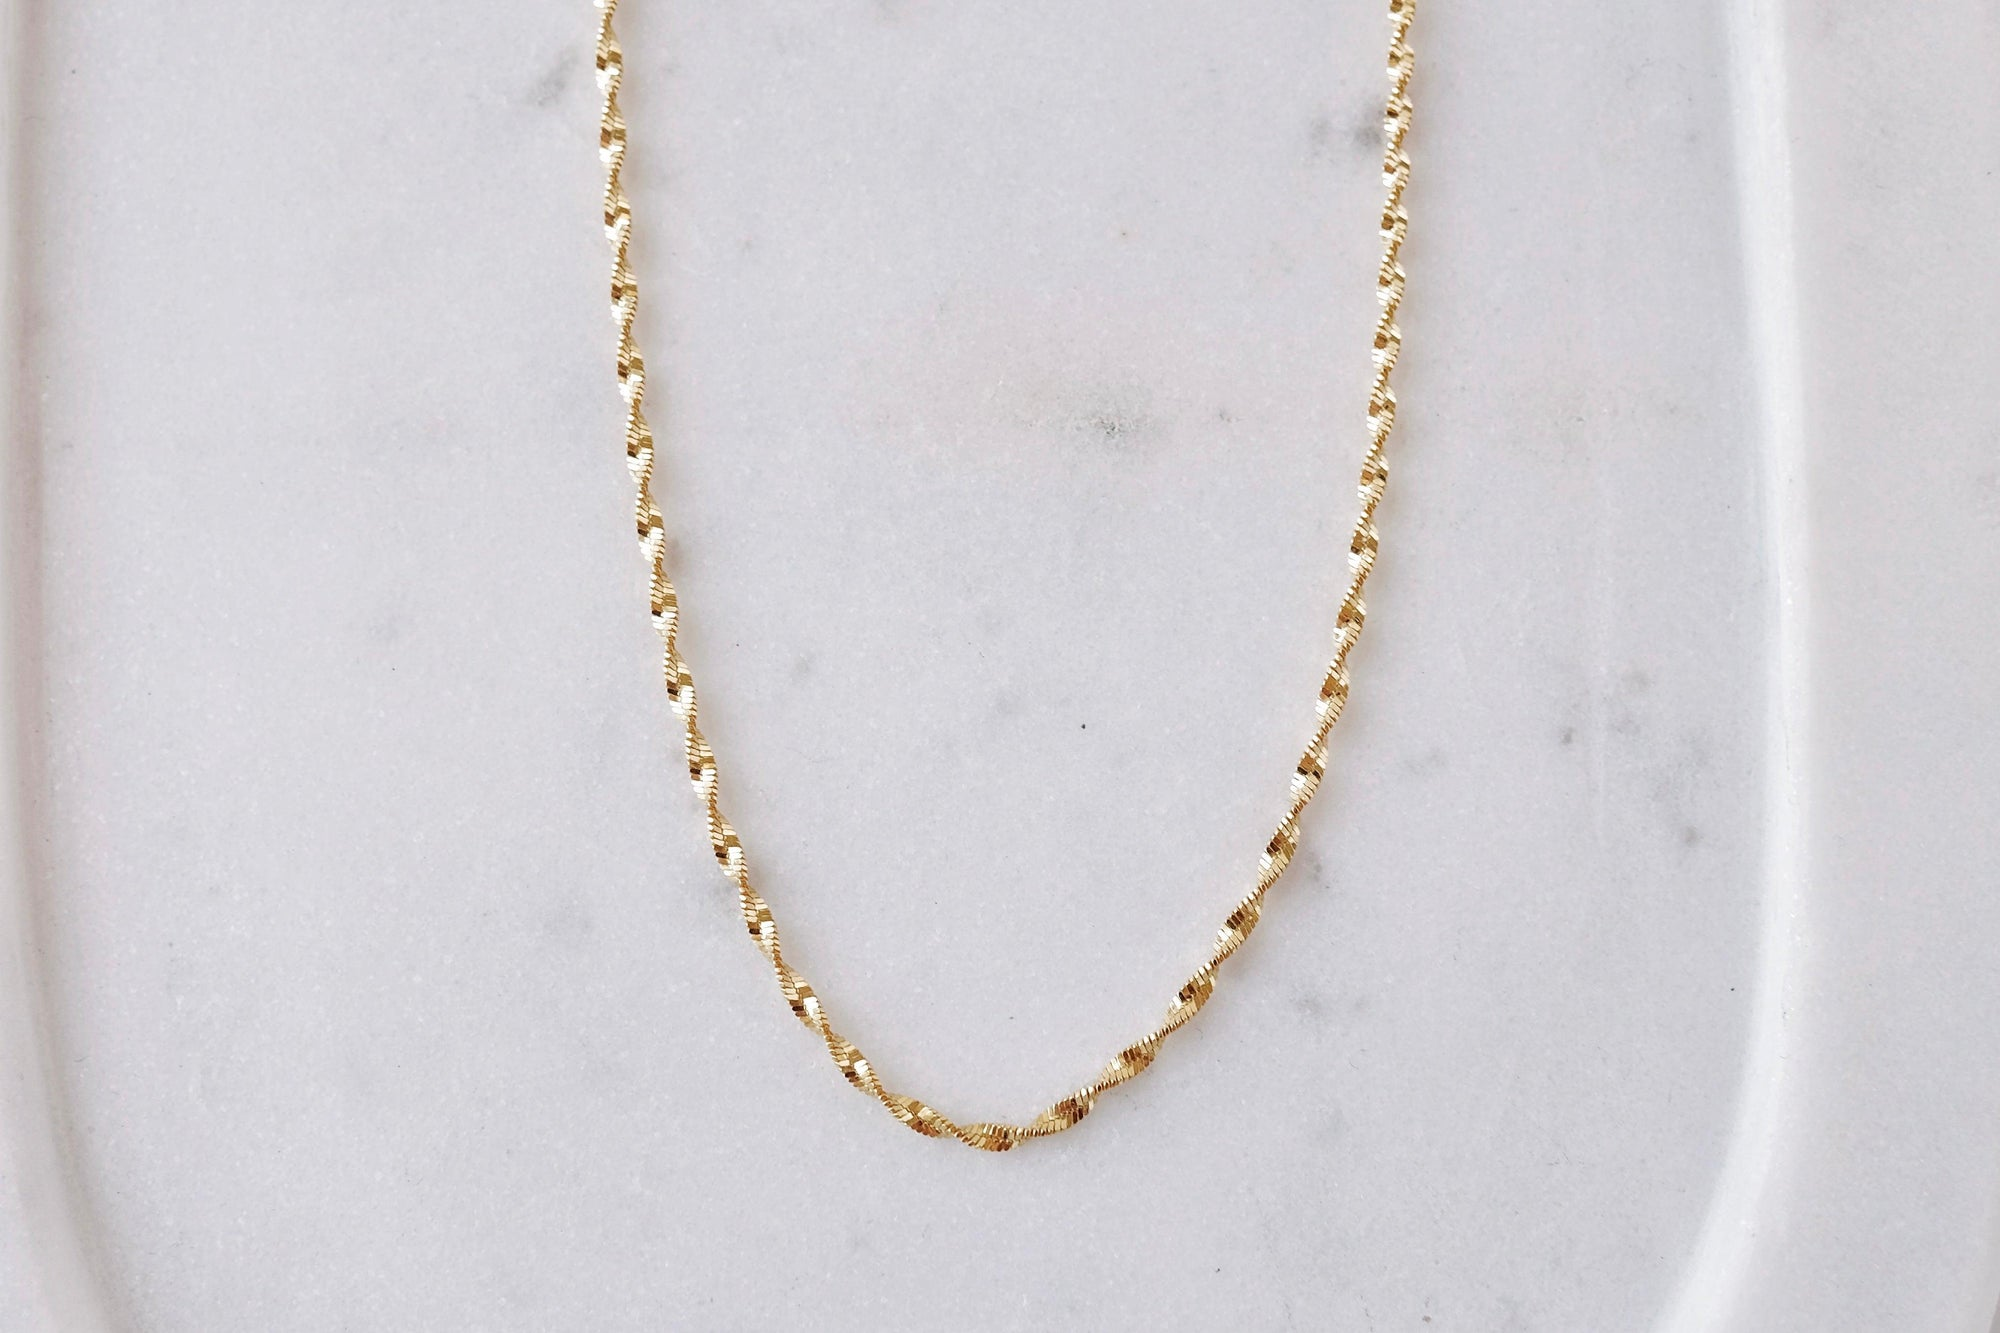 Gold Flourish Necklace